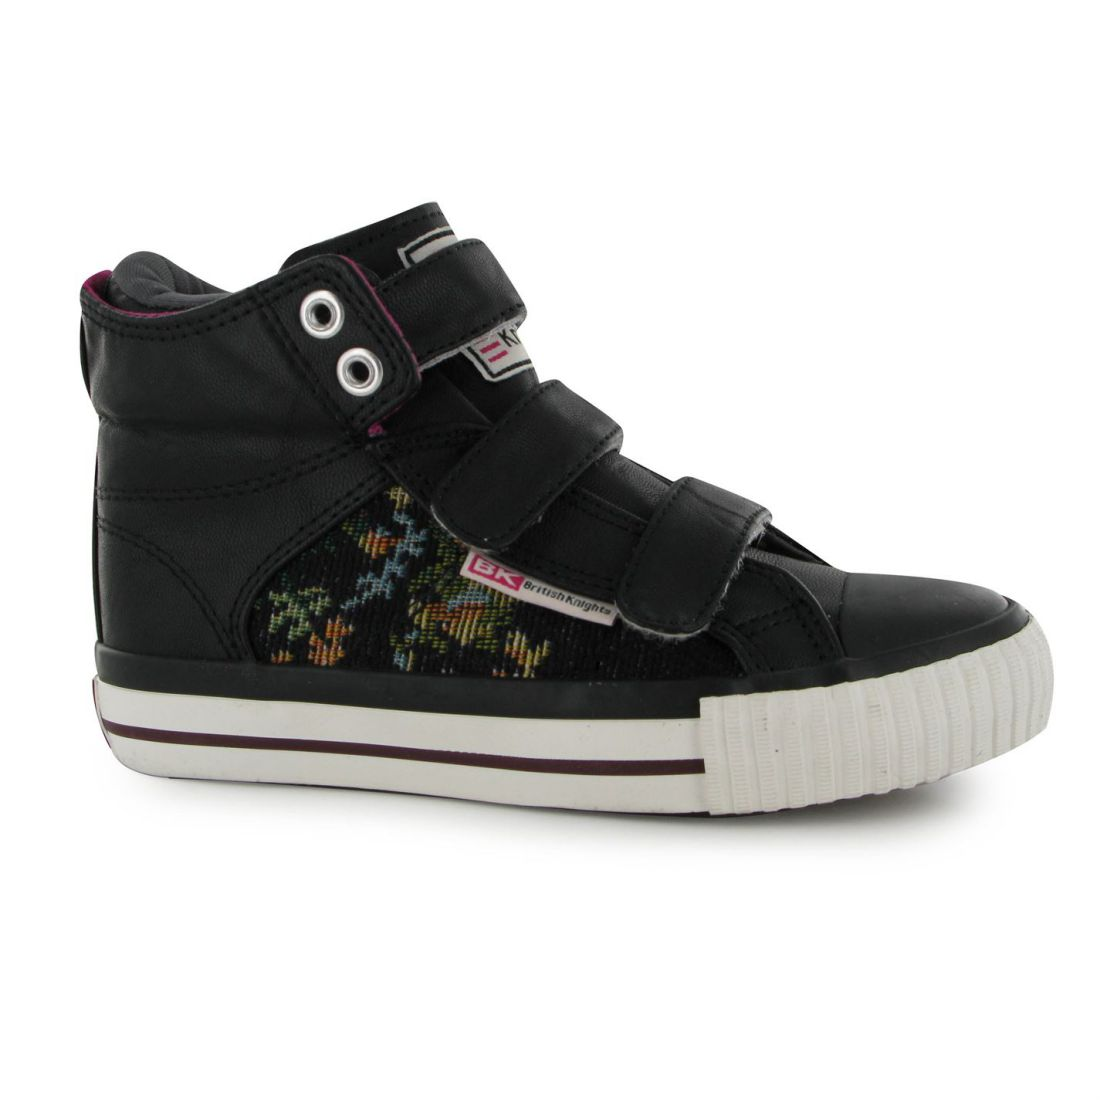 British Knights Roco Mid Top Trainers Pumps Running Sneakers Kids